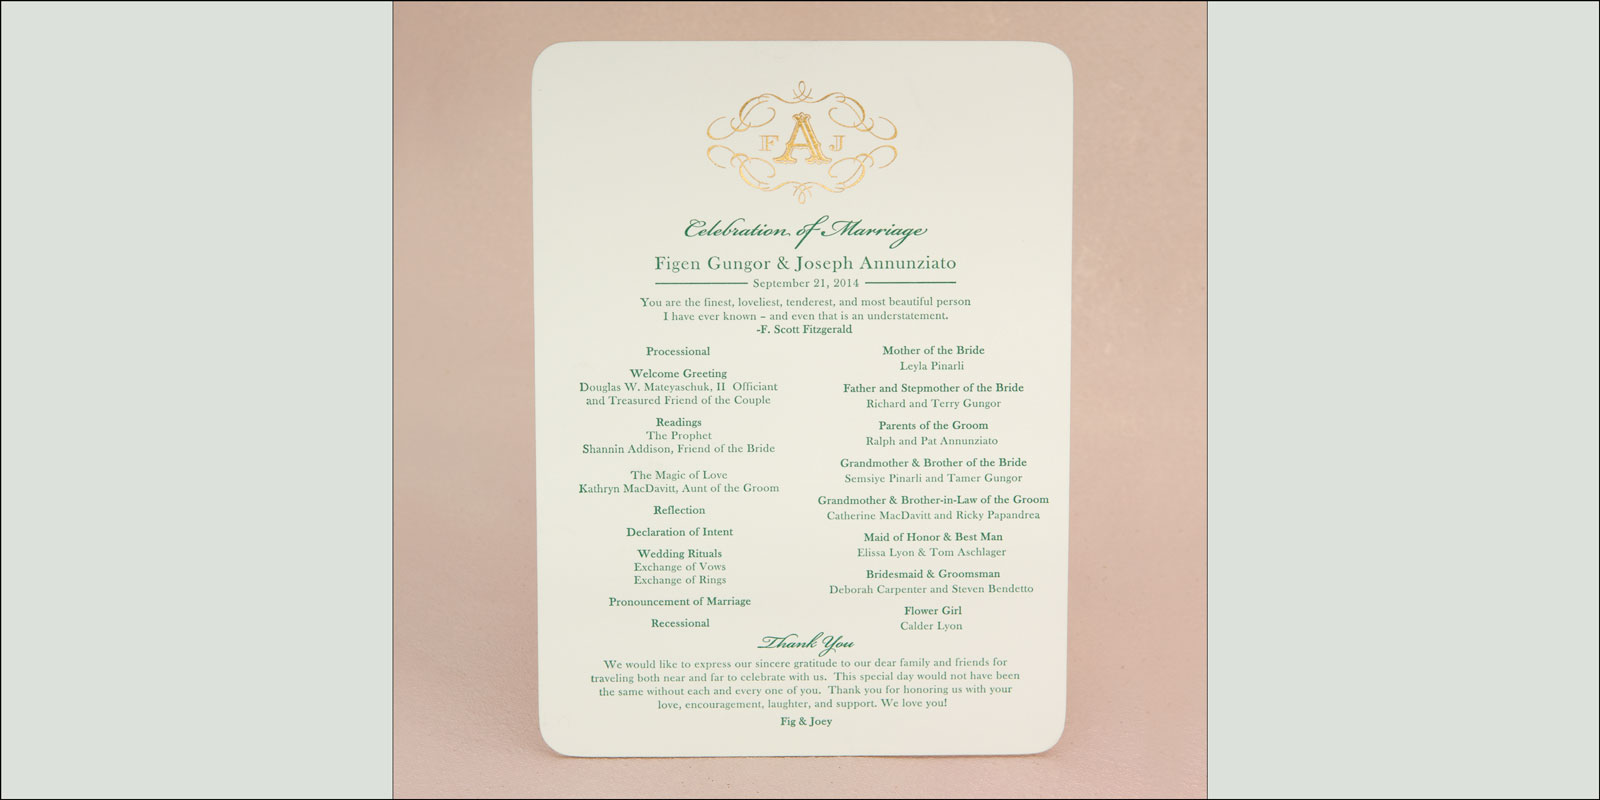 Figen-Joseph-Wedding-Menu-Program-4